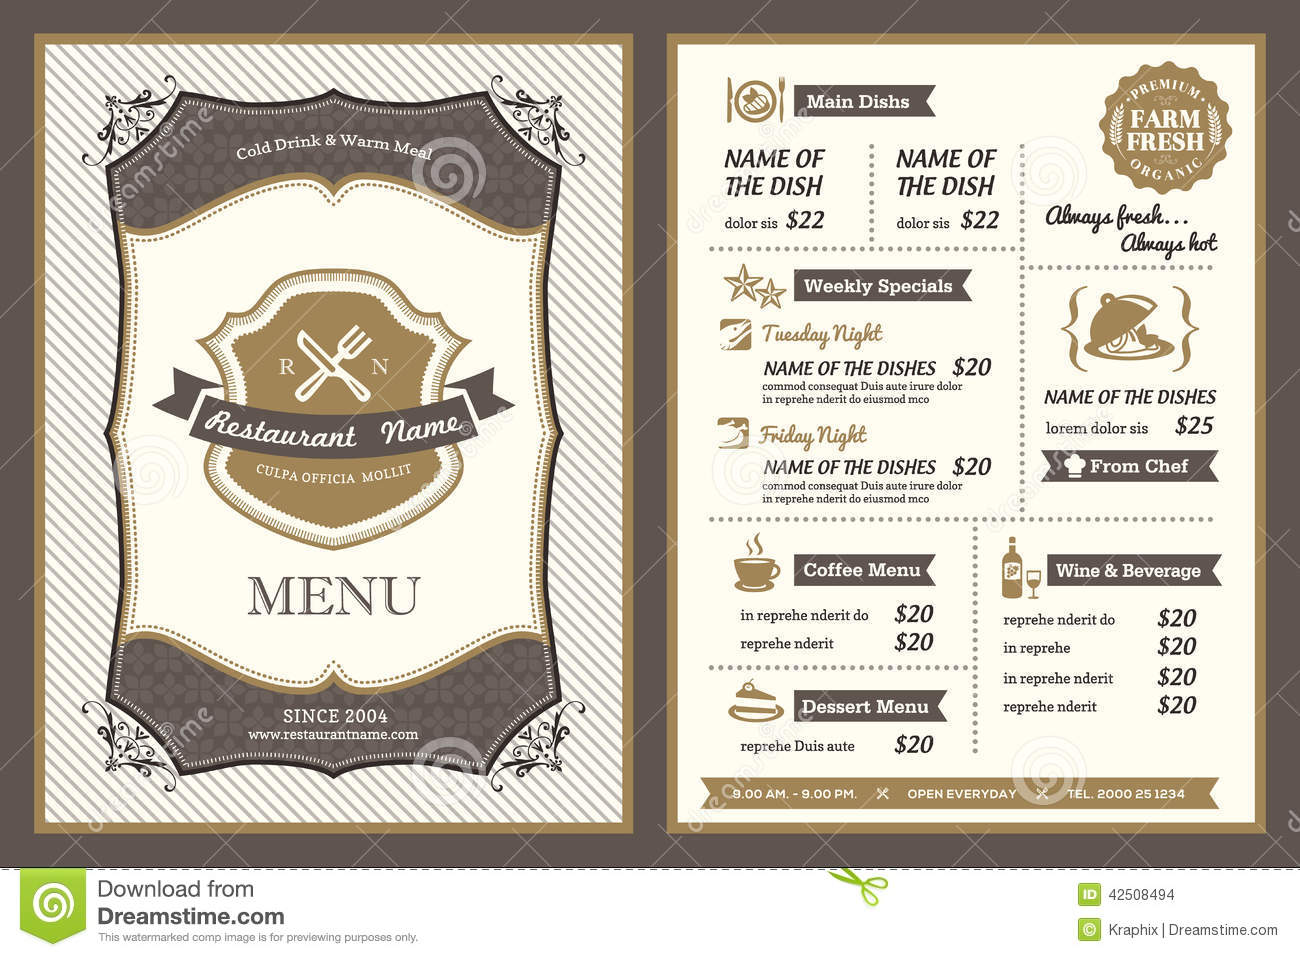 Vintage Frame Restaurant Menu Design Stock Vector   Image  42508494